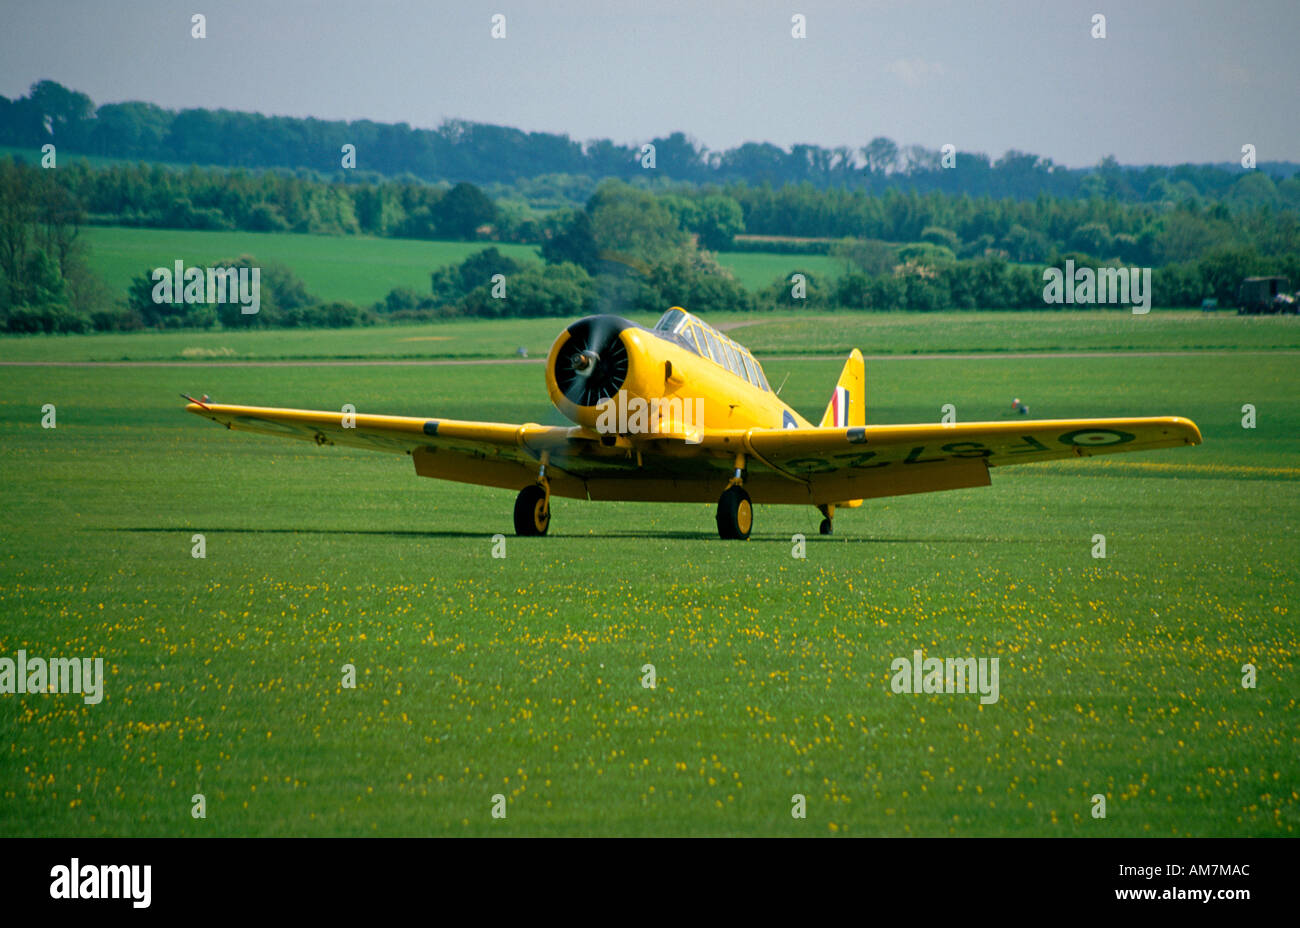 Yellow propellor driven historic aircraft at Middle Wallop - Stock Image